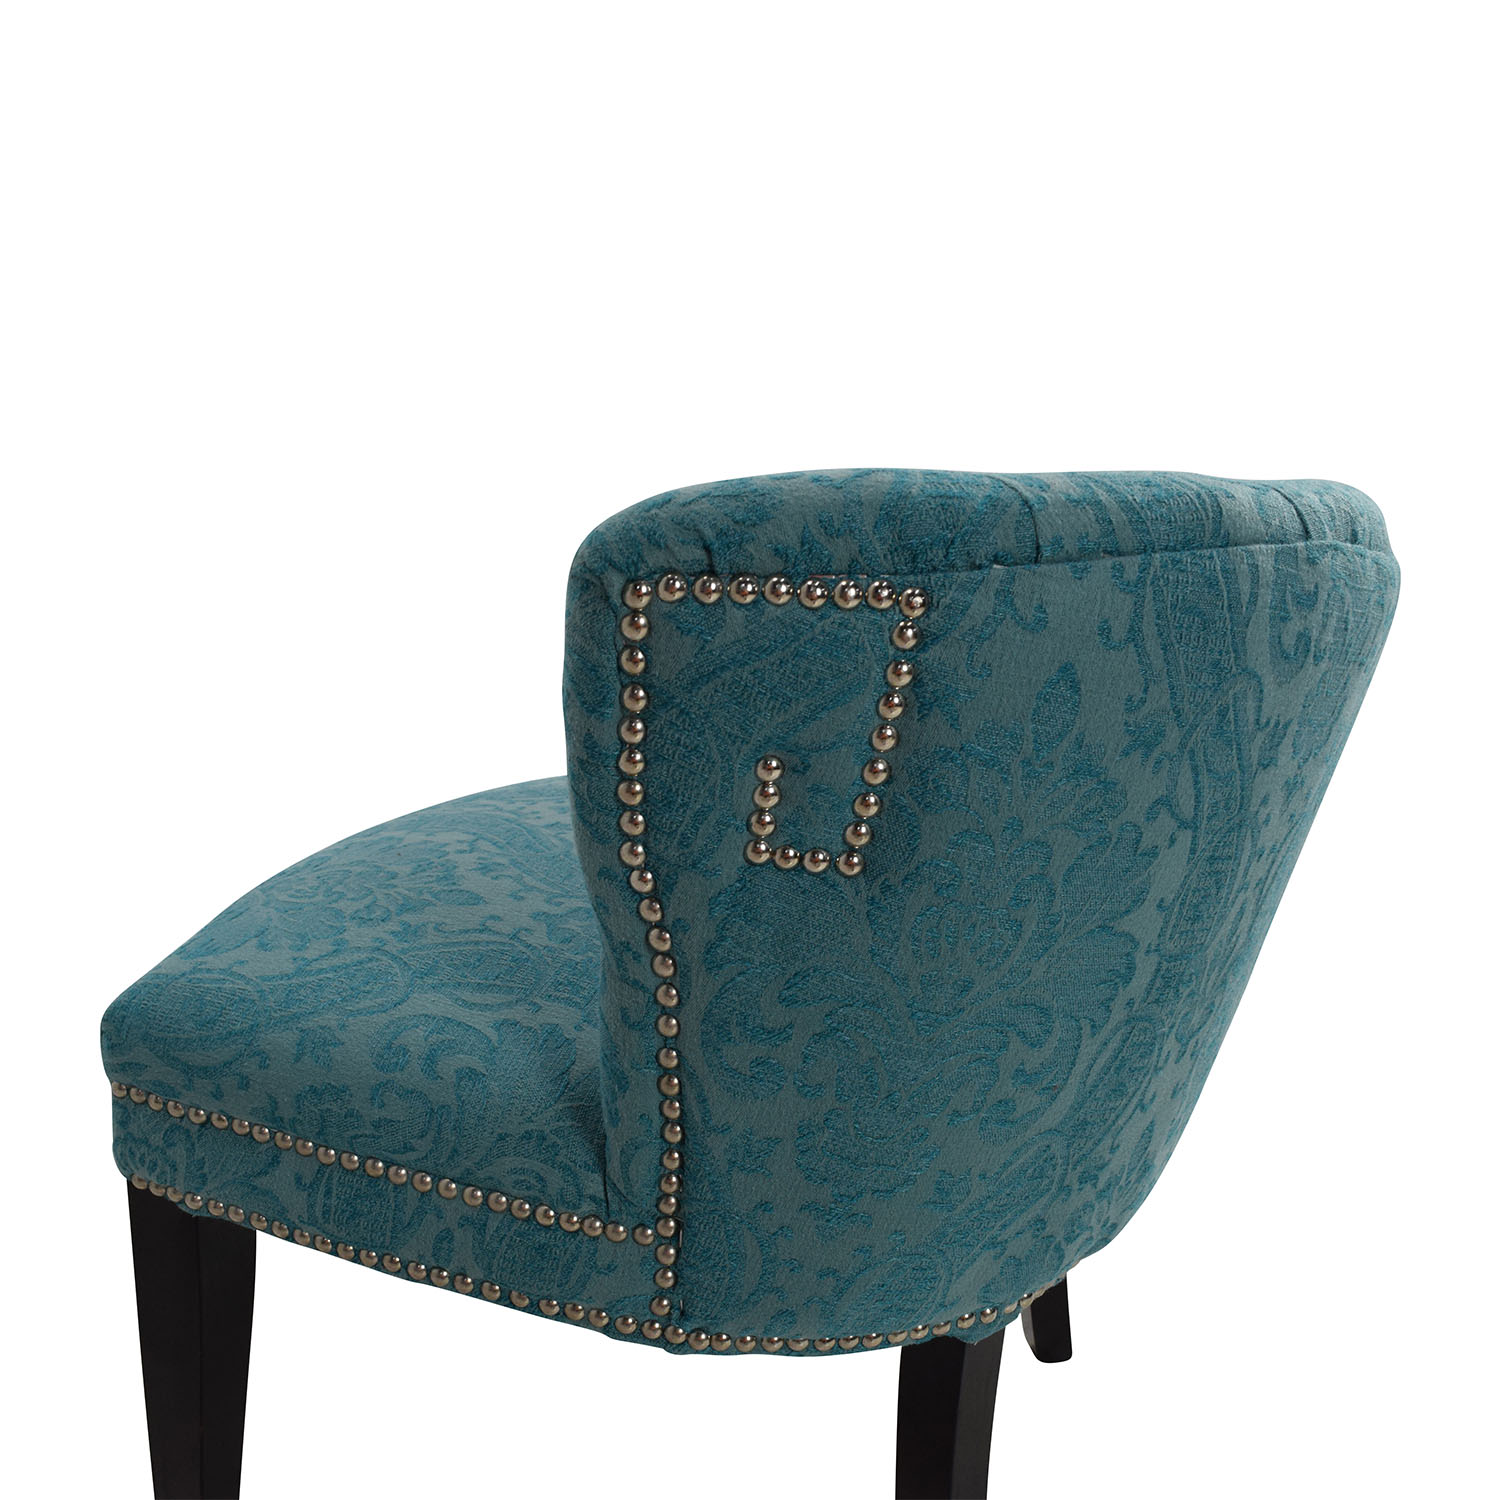 50 OFF  Home Goods Cynthia Rowley Shabby Chic Chair  Chairs